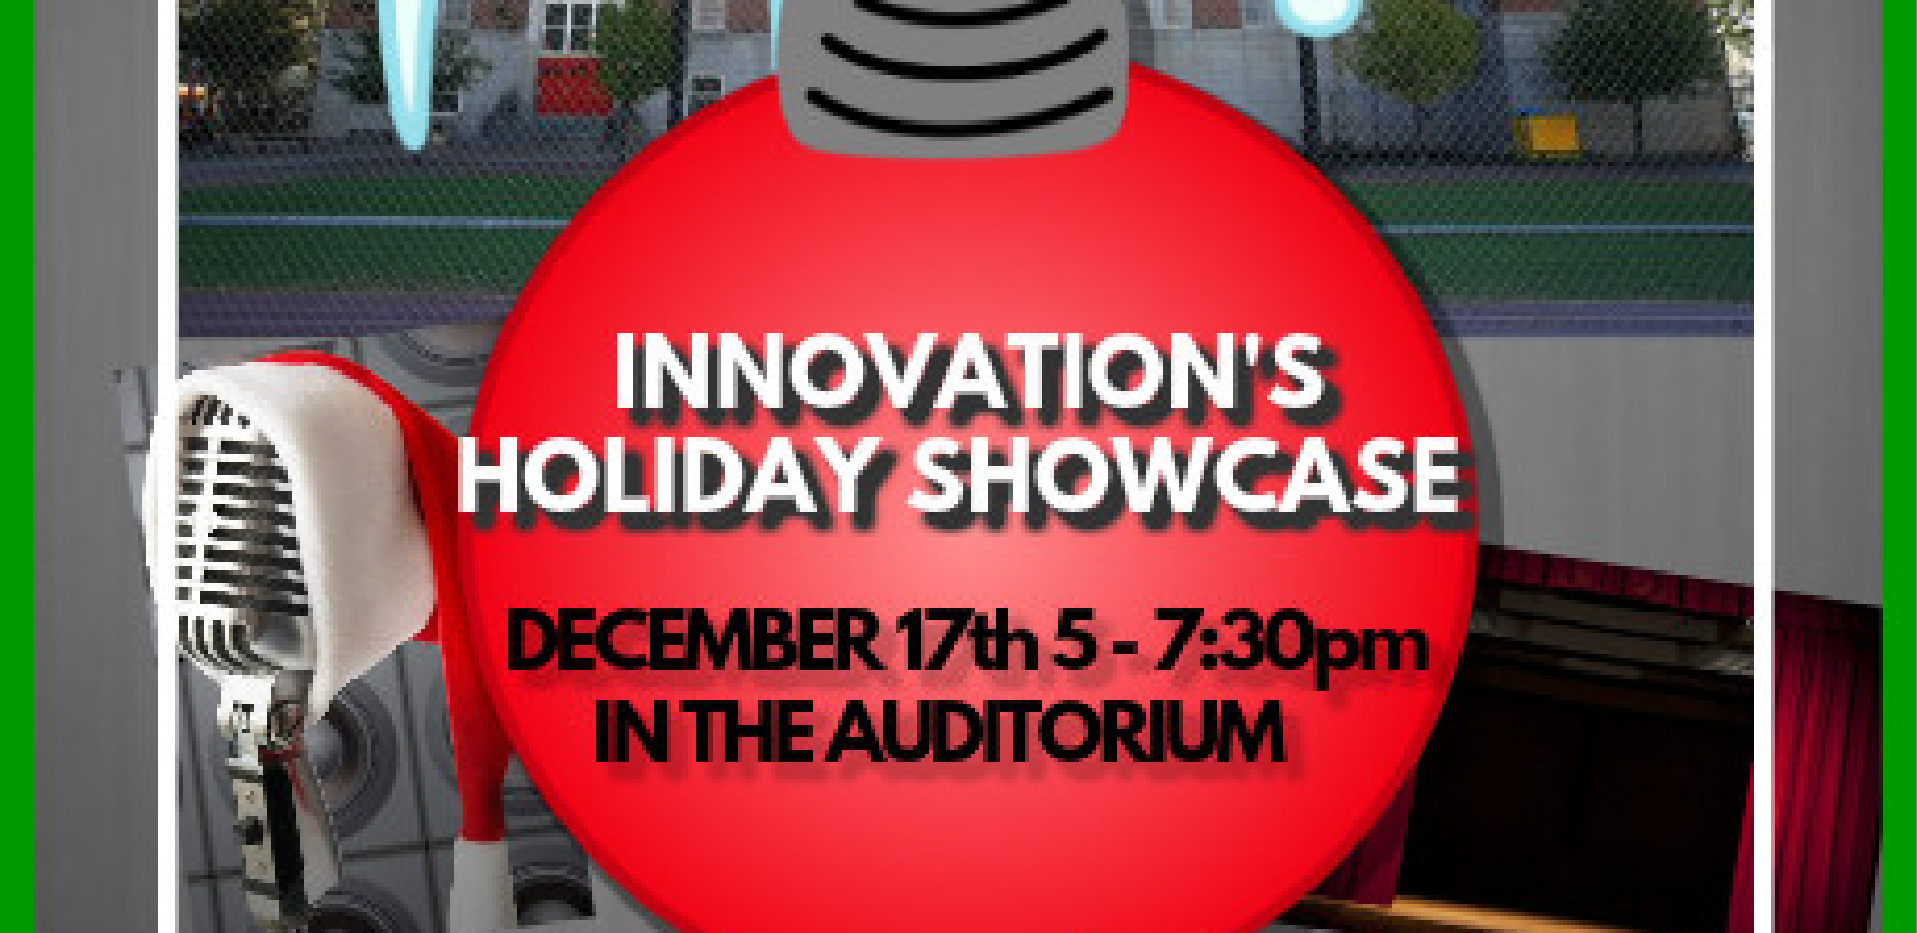 Innovation Student Talent on Display – December 17th at 5 pm!